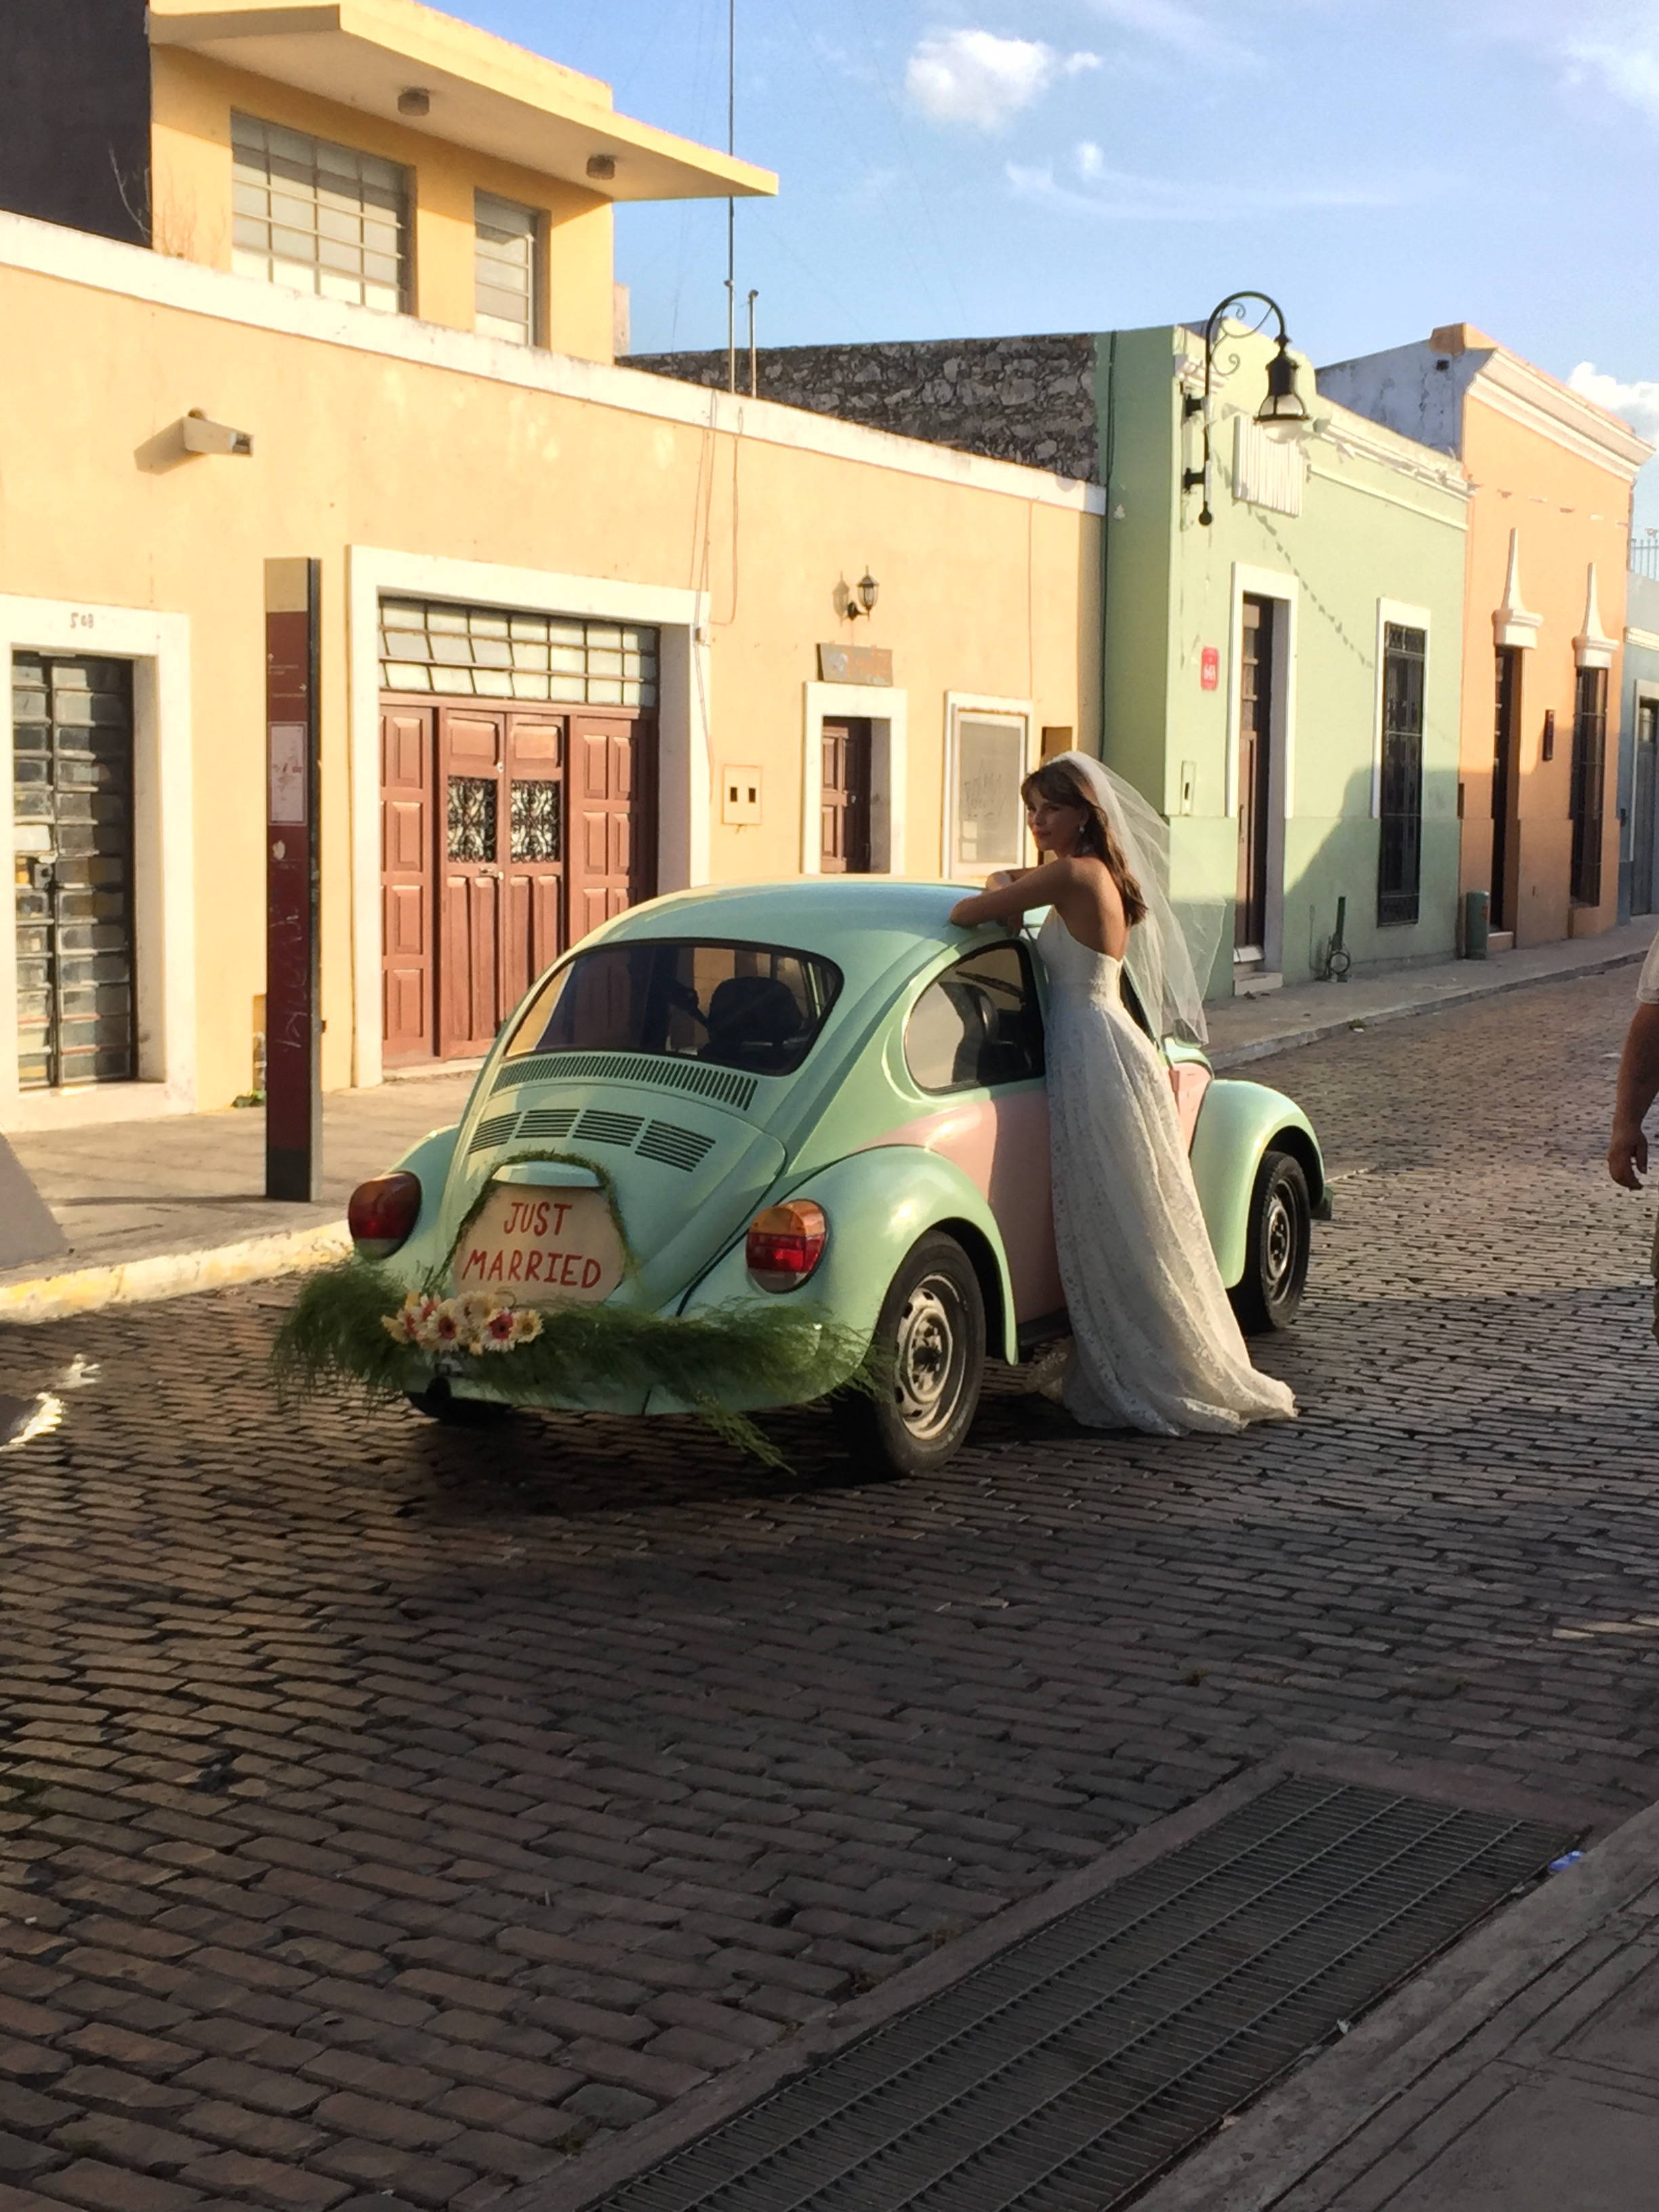 How fun is this pink and green vintage Volkswagen Beetle? See more on the David's Bridal blog - www.davidsbridal.com/blog.